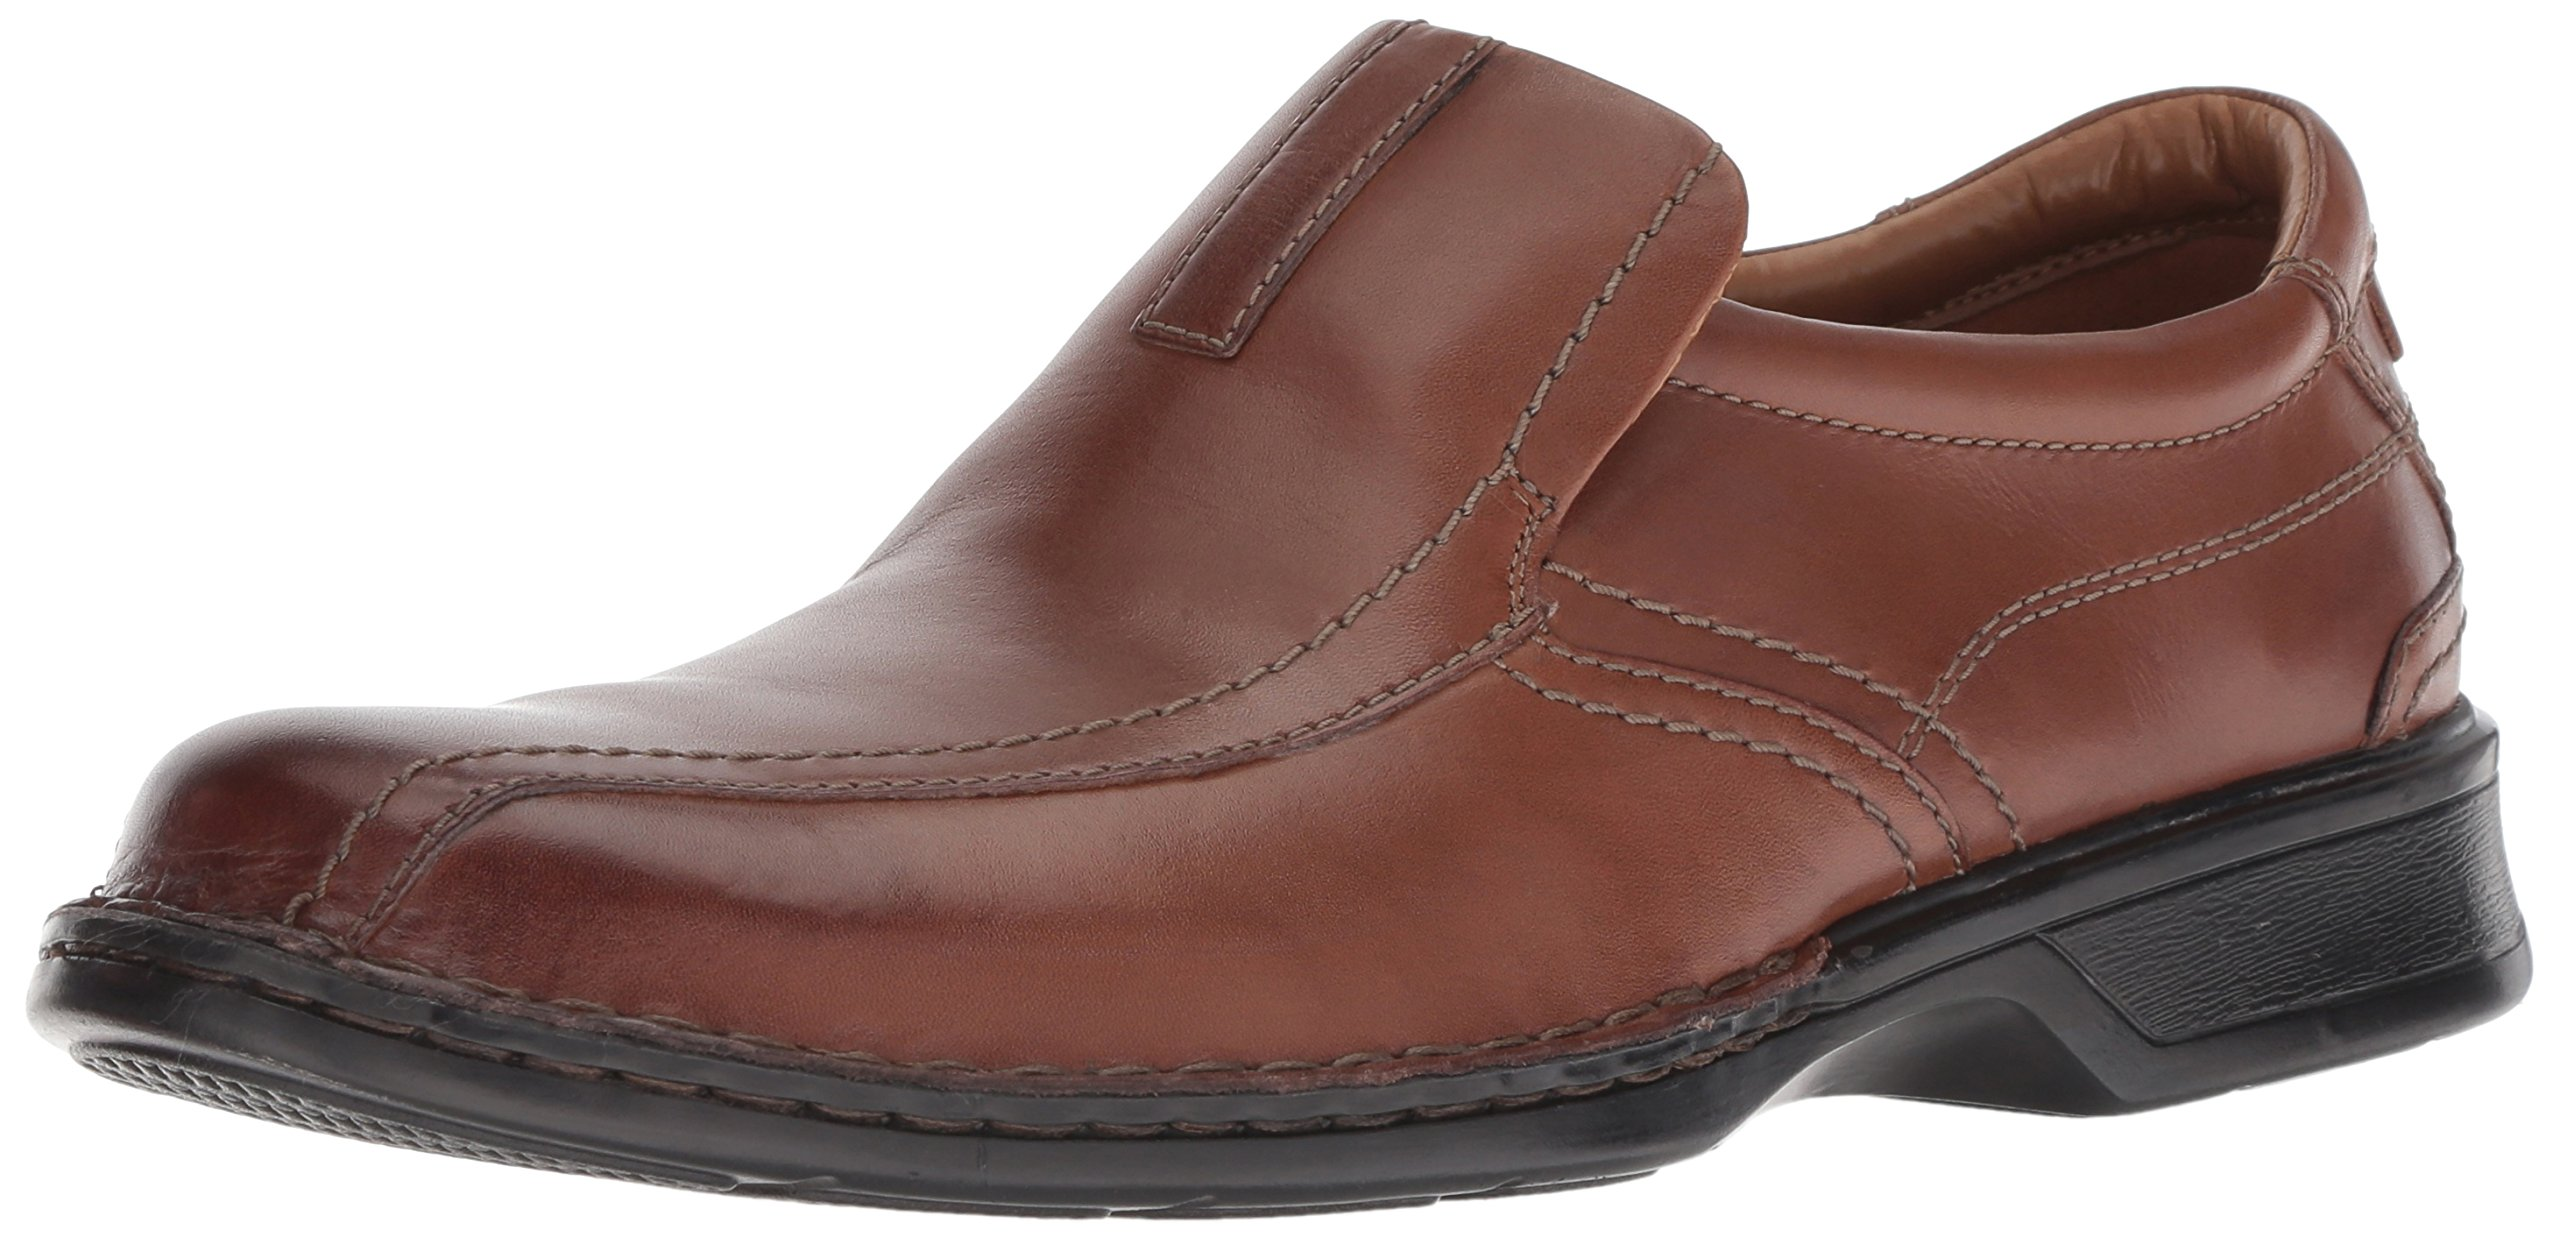 Clarks Men's Escalade Step Slip-on Loafer- Brown Leather 7.5 D(M) US by CLARKS